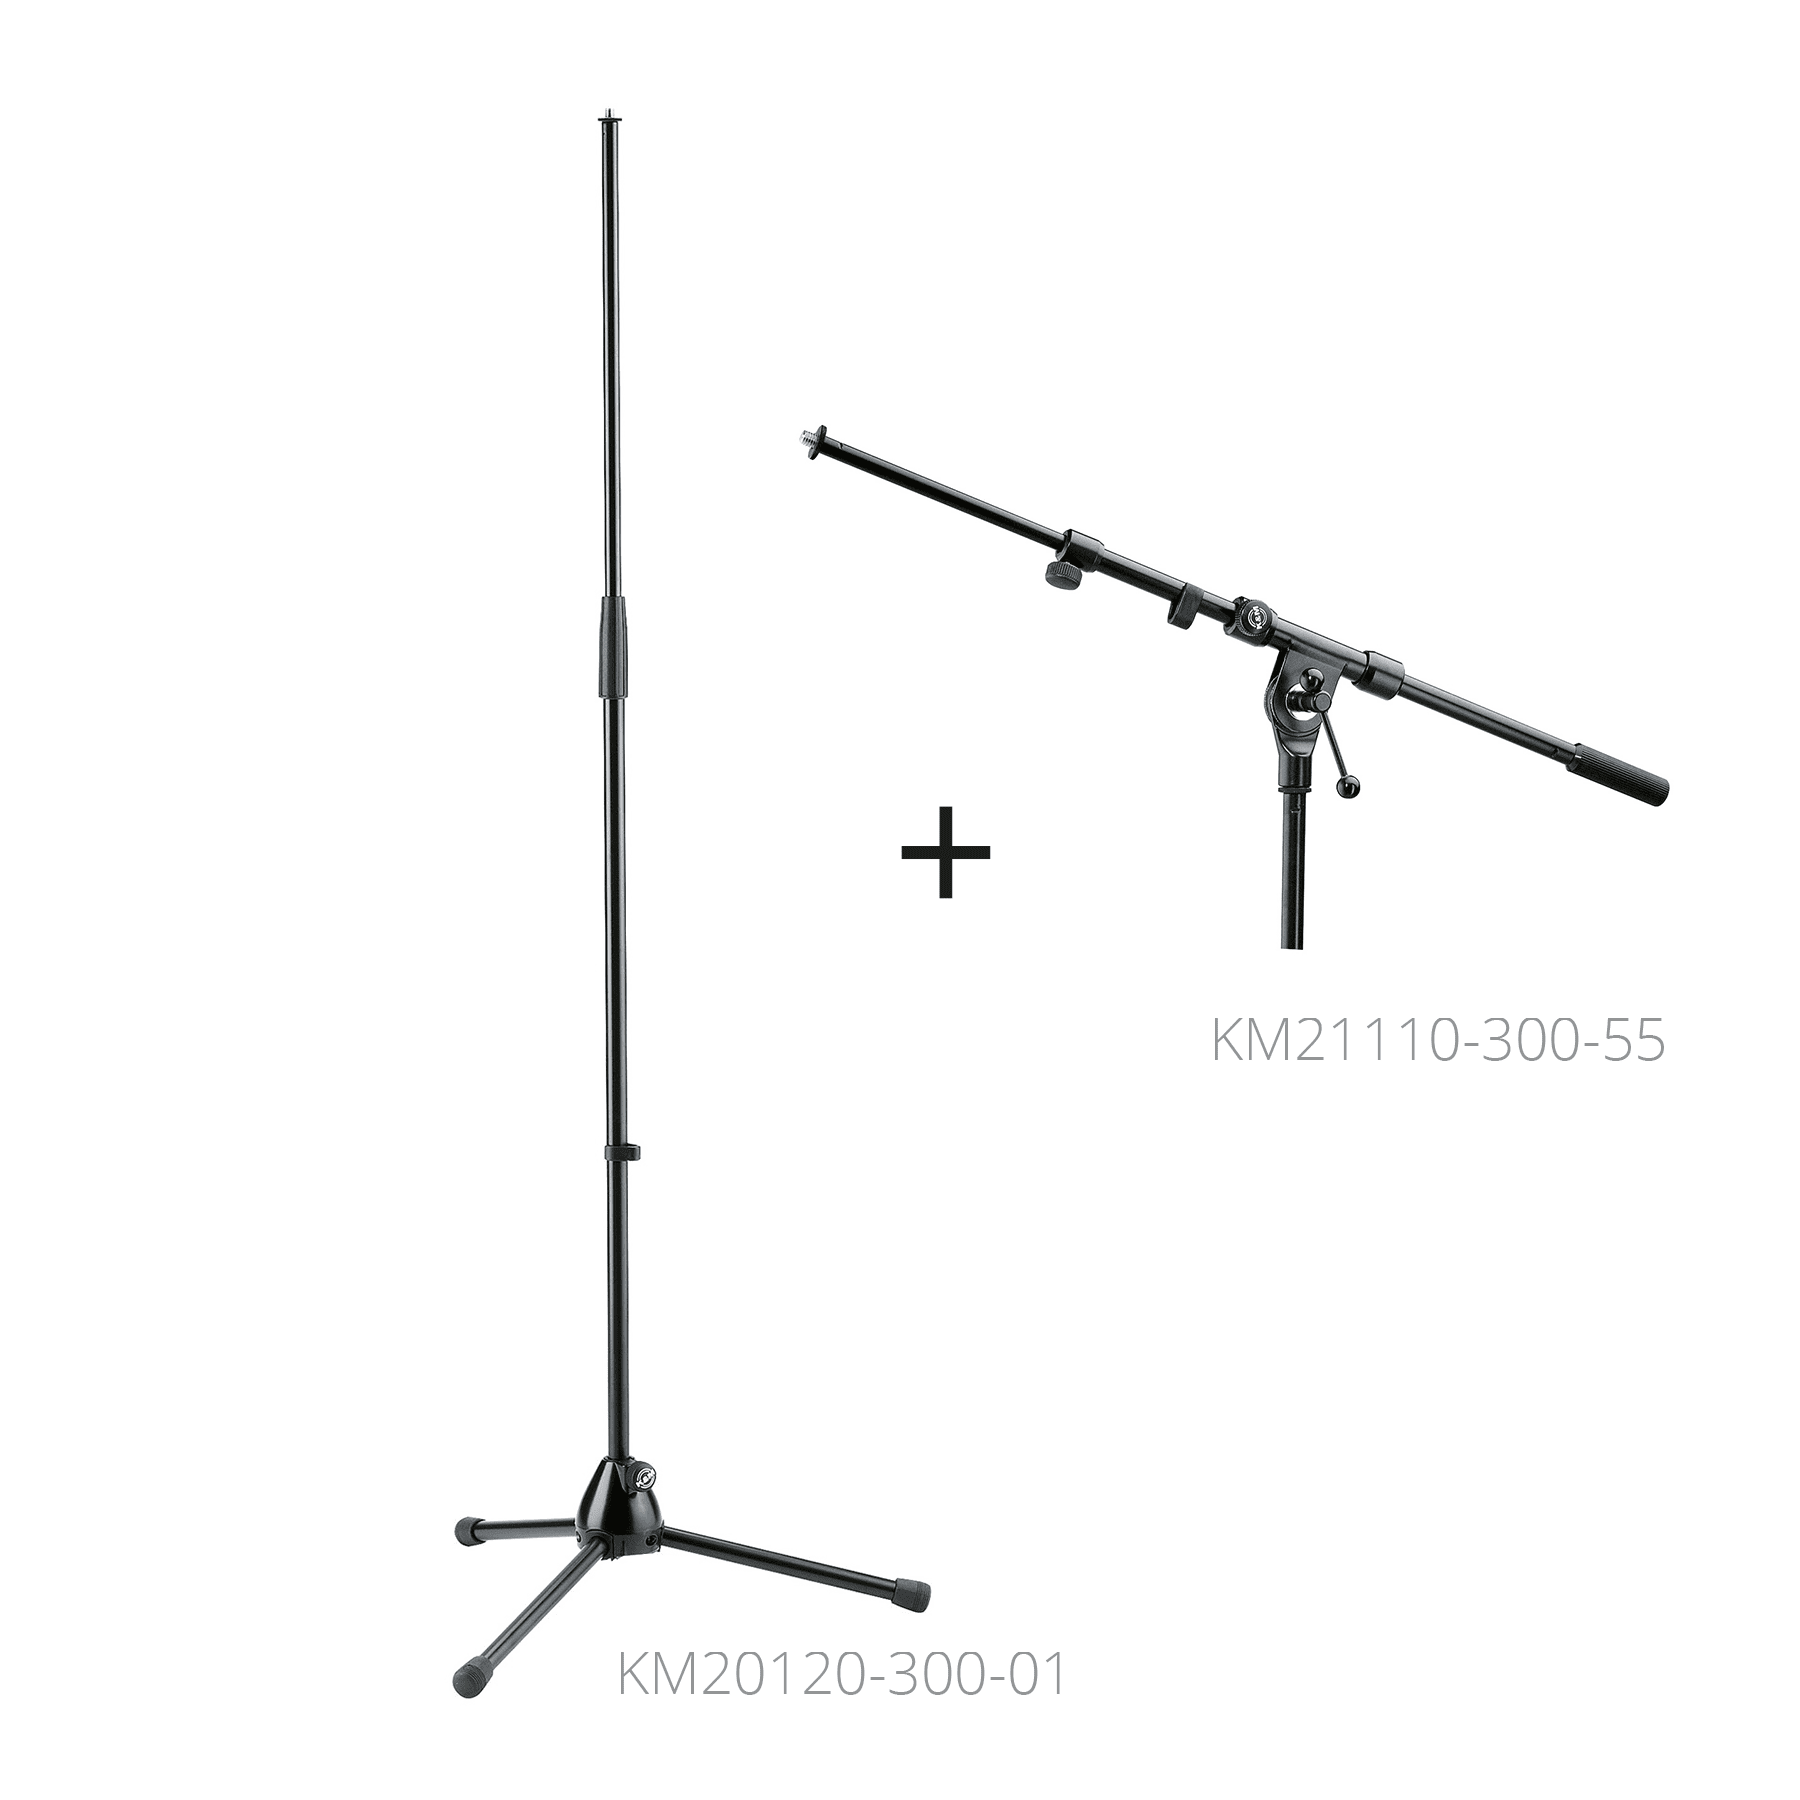 KM21040-300-55 - Microphone stand with boom